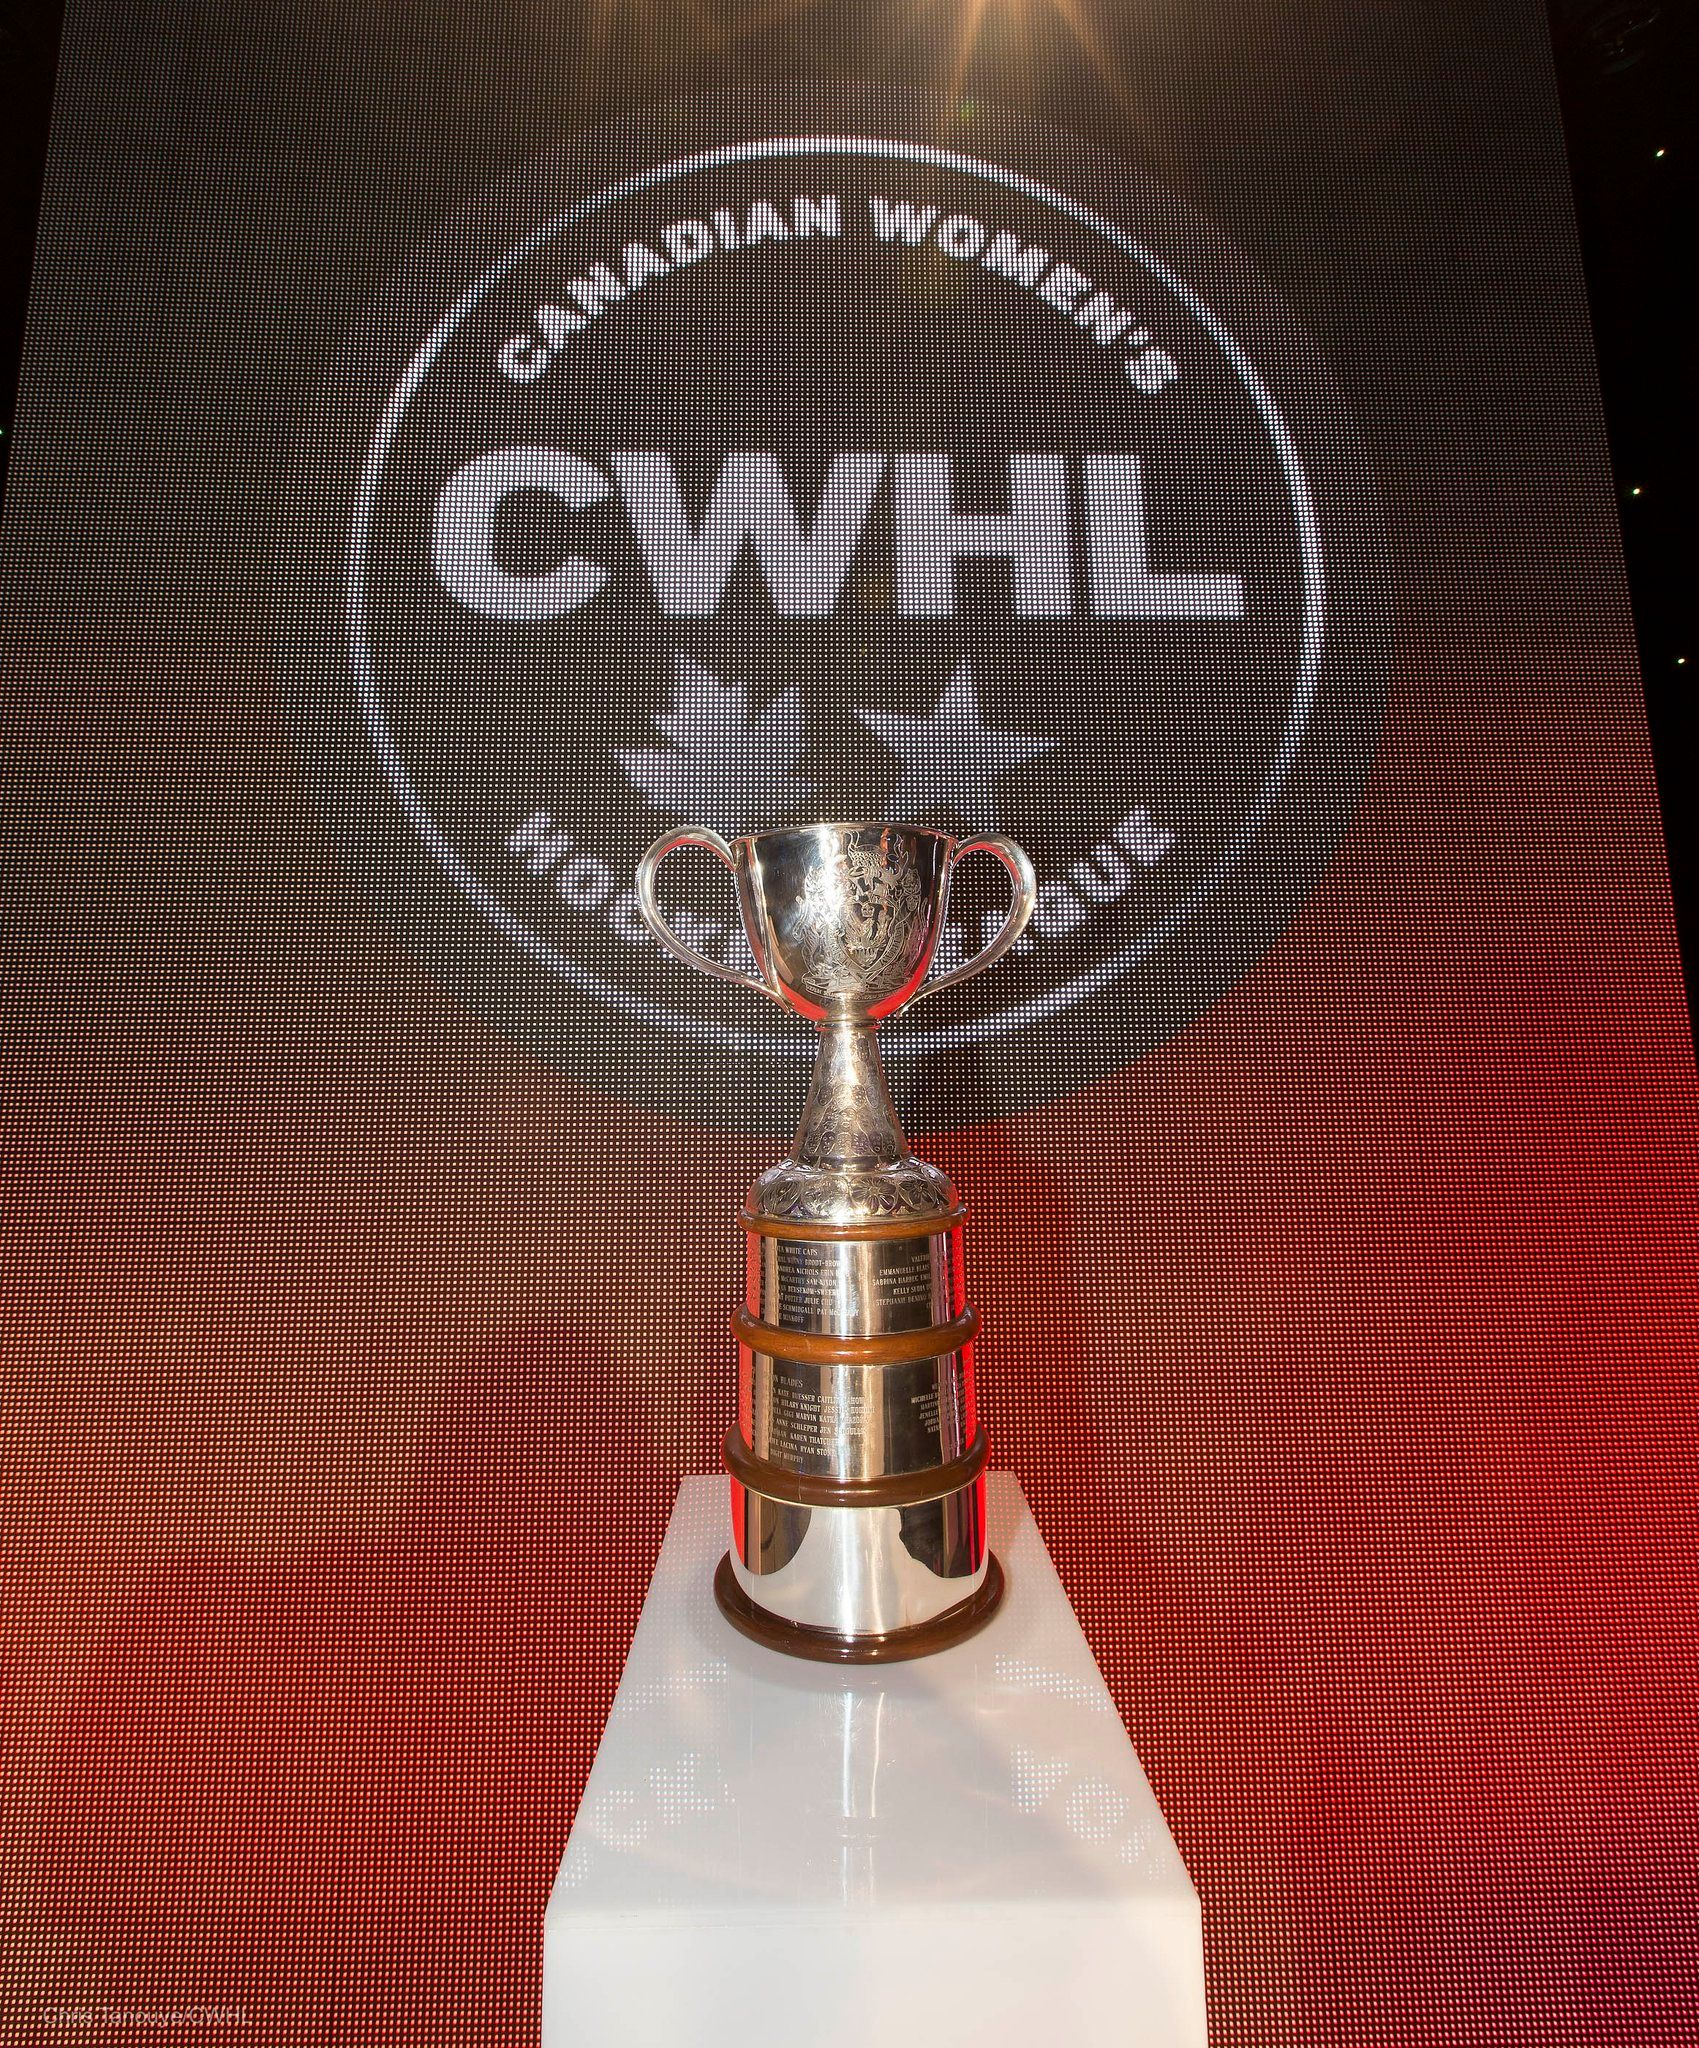 CWHL: Board of Directors Shutters League, Literally Everyone Reacts